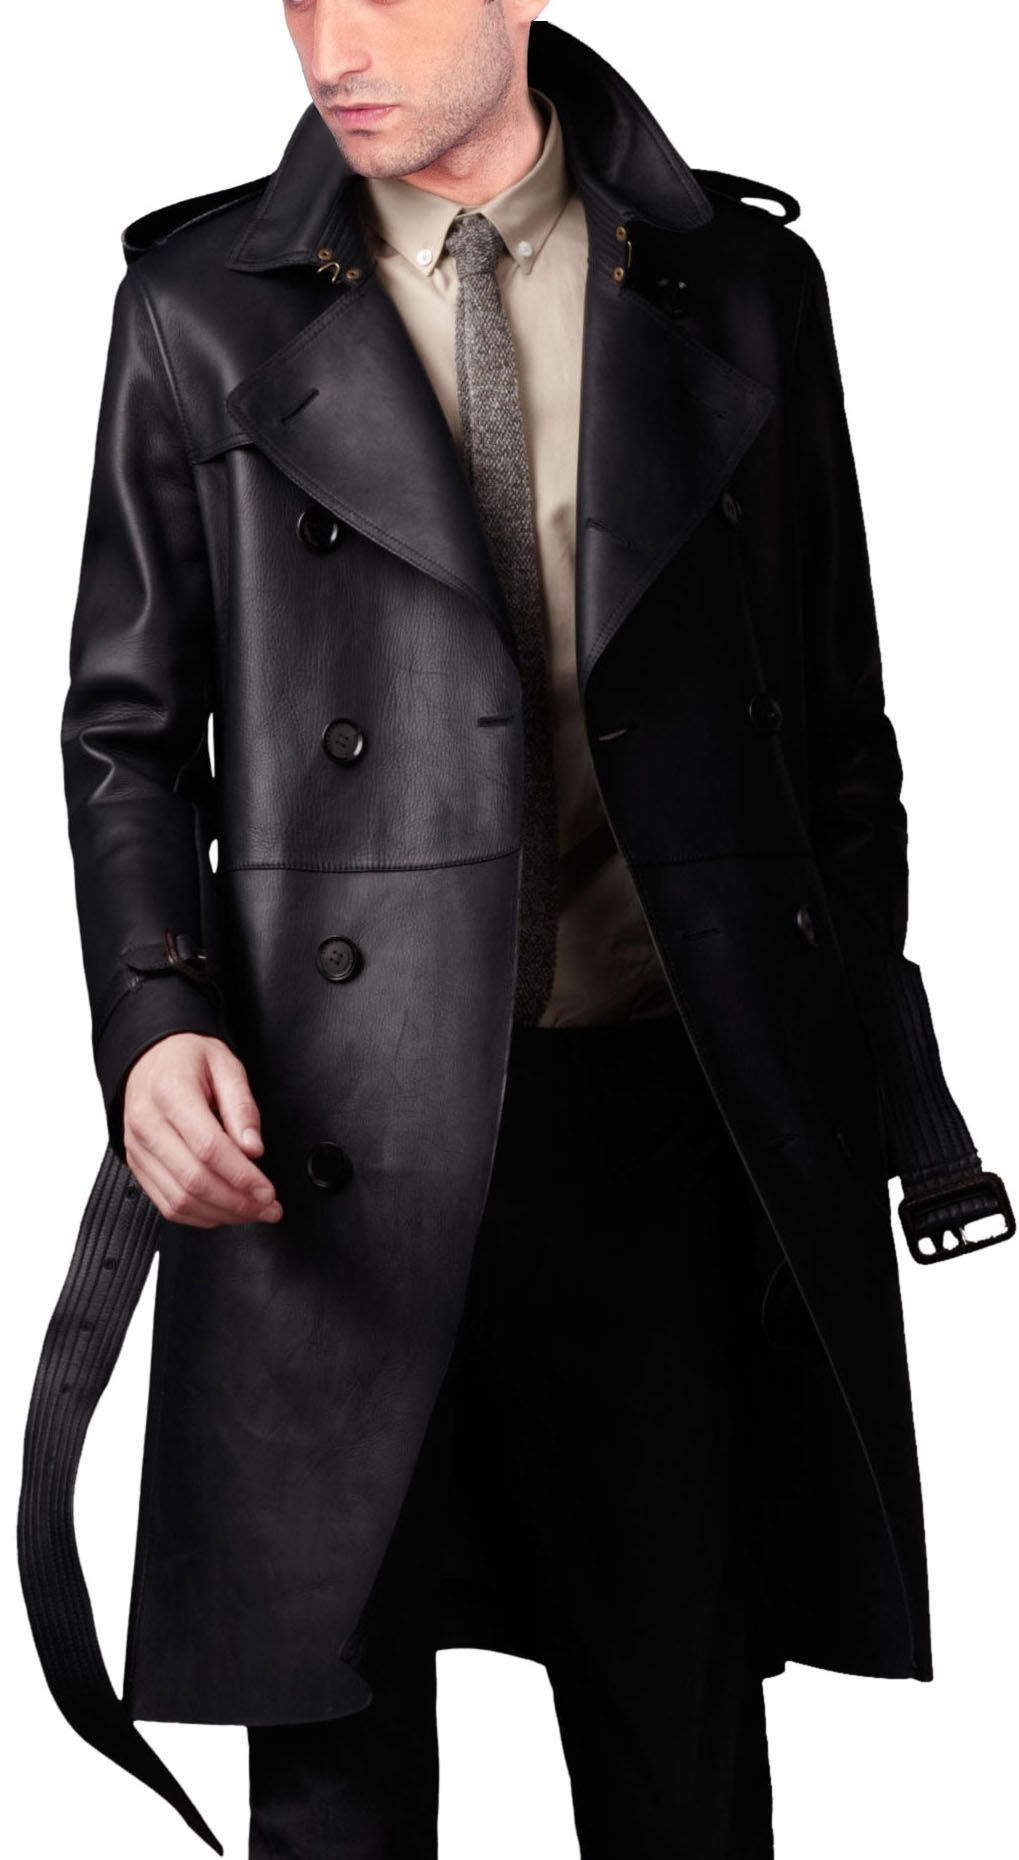 trench-leather-coat-front.jpg (1019×1860) | Cloth | Pinterest ...